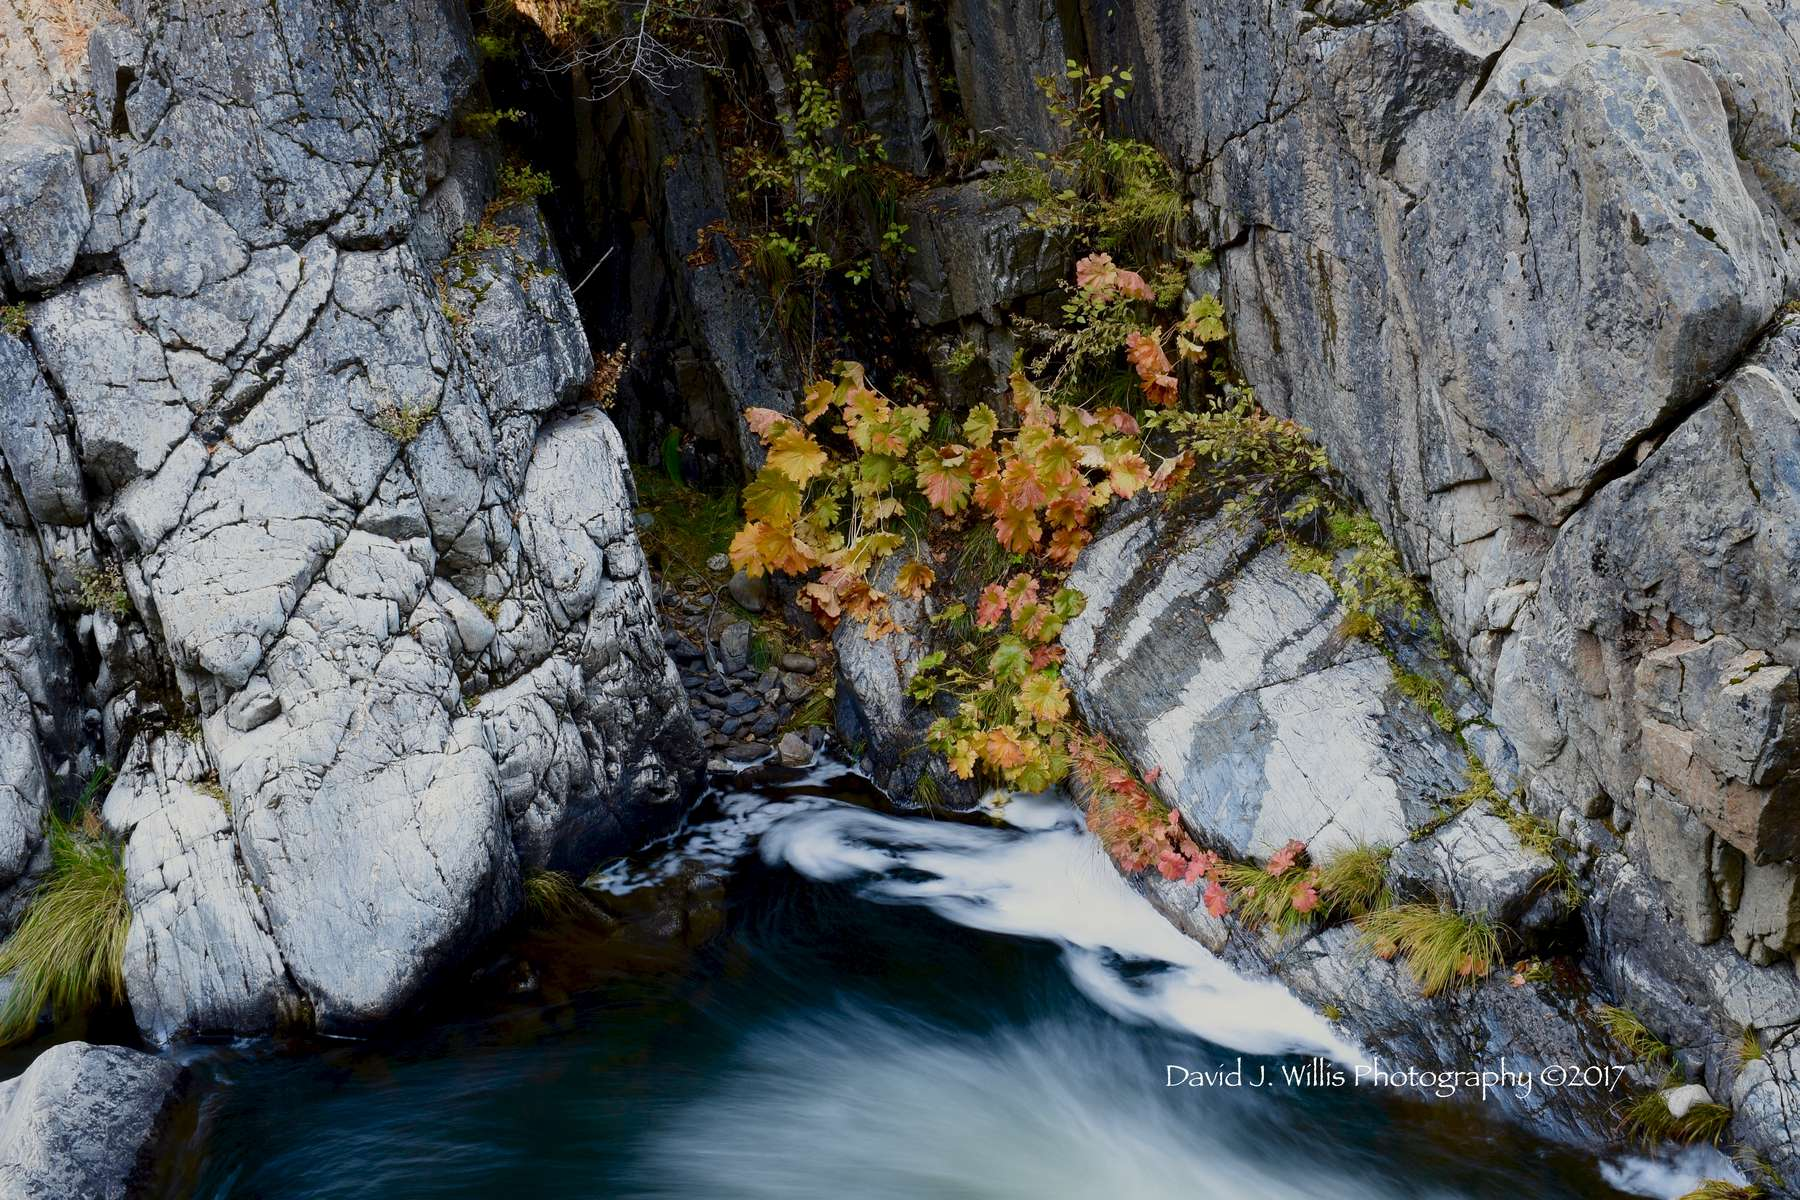 Rocks and Rhubarb at Keddie Cascades II, Fall, Plumas County